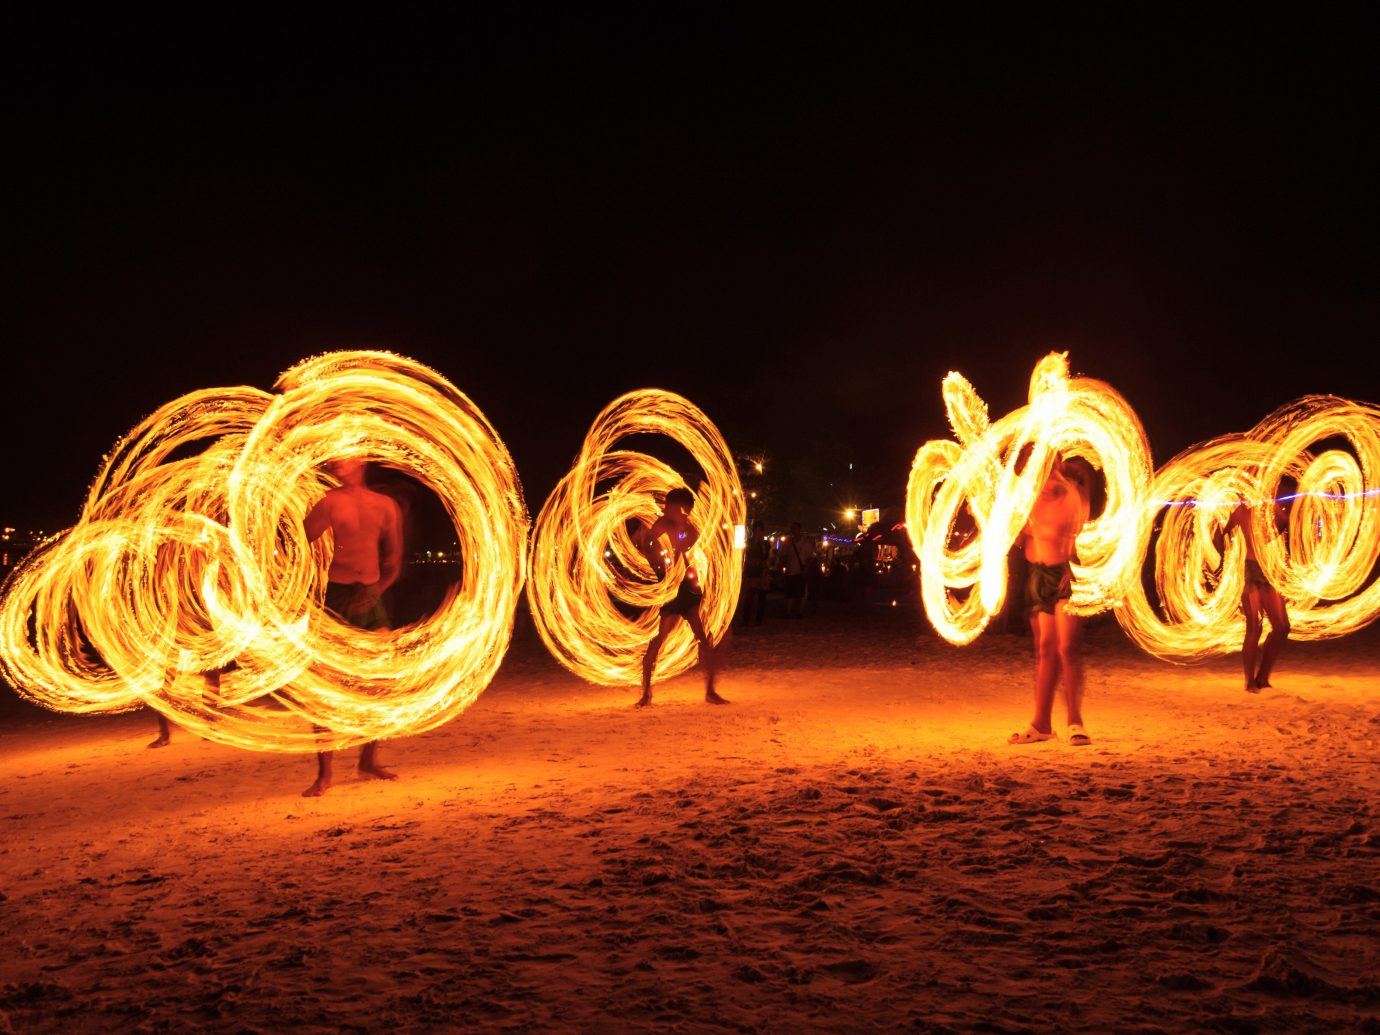 Beach Design Jetsetter Guides Nightlife Outdoor Activities poi night light font wheel darkness dance lighting event number dark